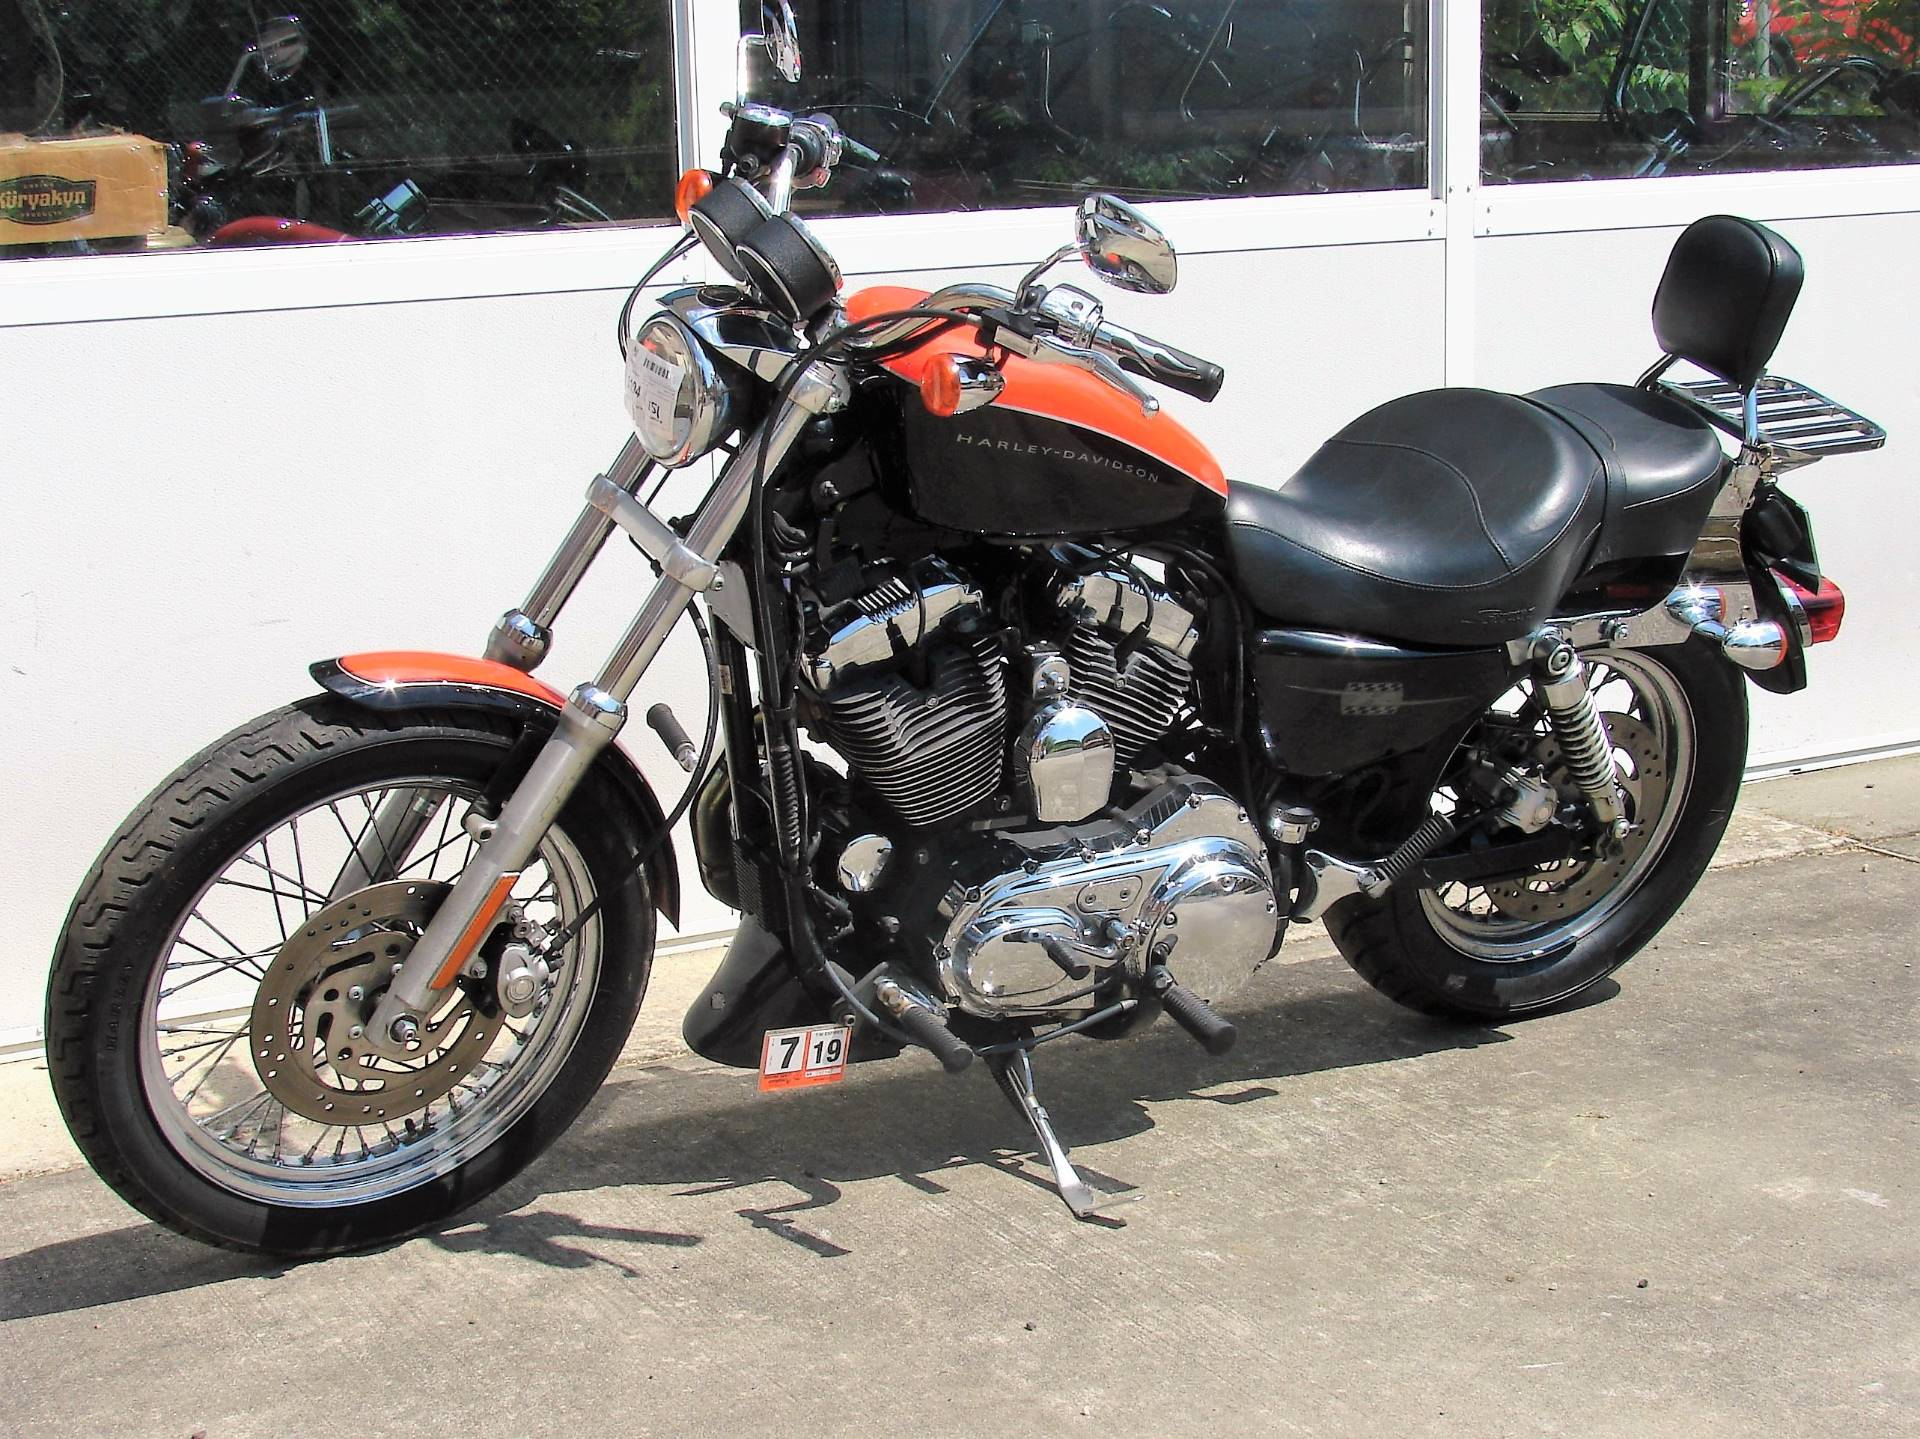 2007 Harley-Davidson 1200 Sportster XL 50  (50th Anniversary Edition) in Williamstown, New Jersey - Photo 9